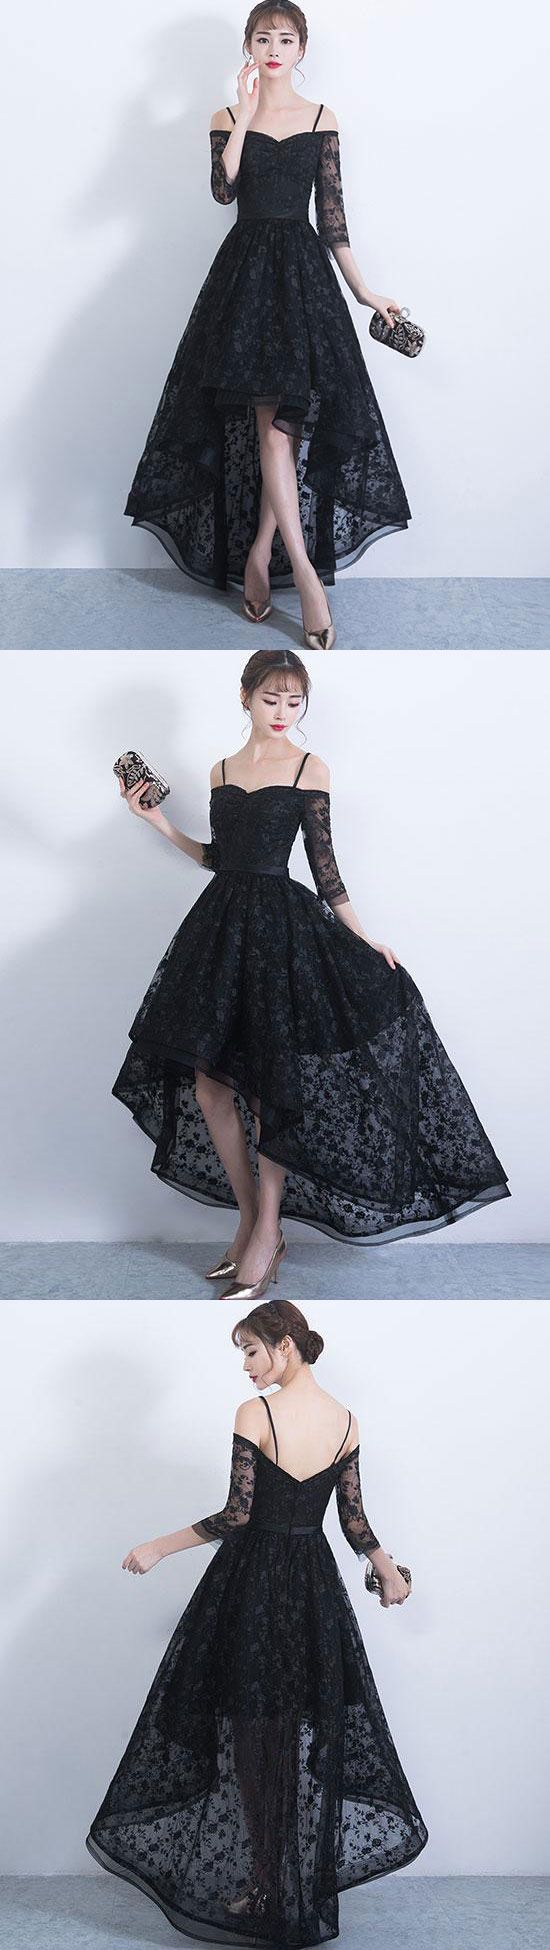 Black sweetheart lace high low prom dress, lace evening dress, lace formal dress for teens